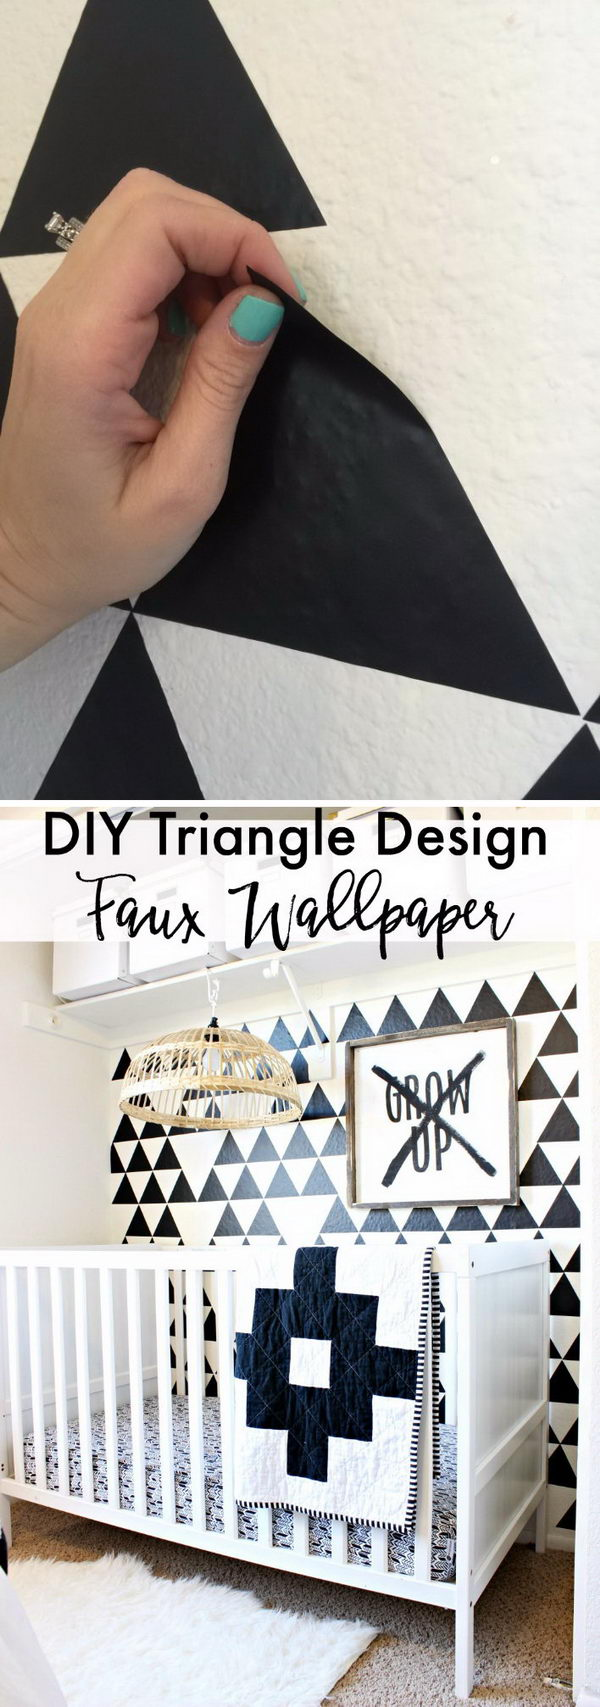 DIY Triangle Design Faux Wallpaper.